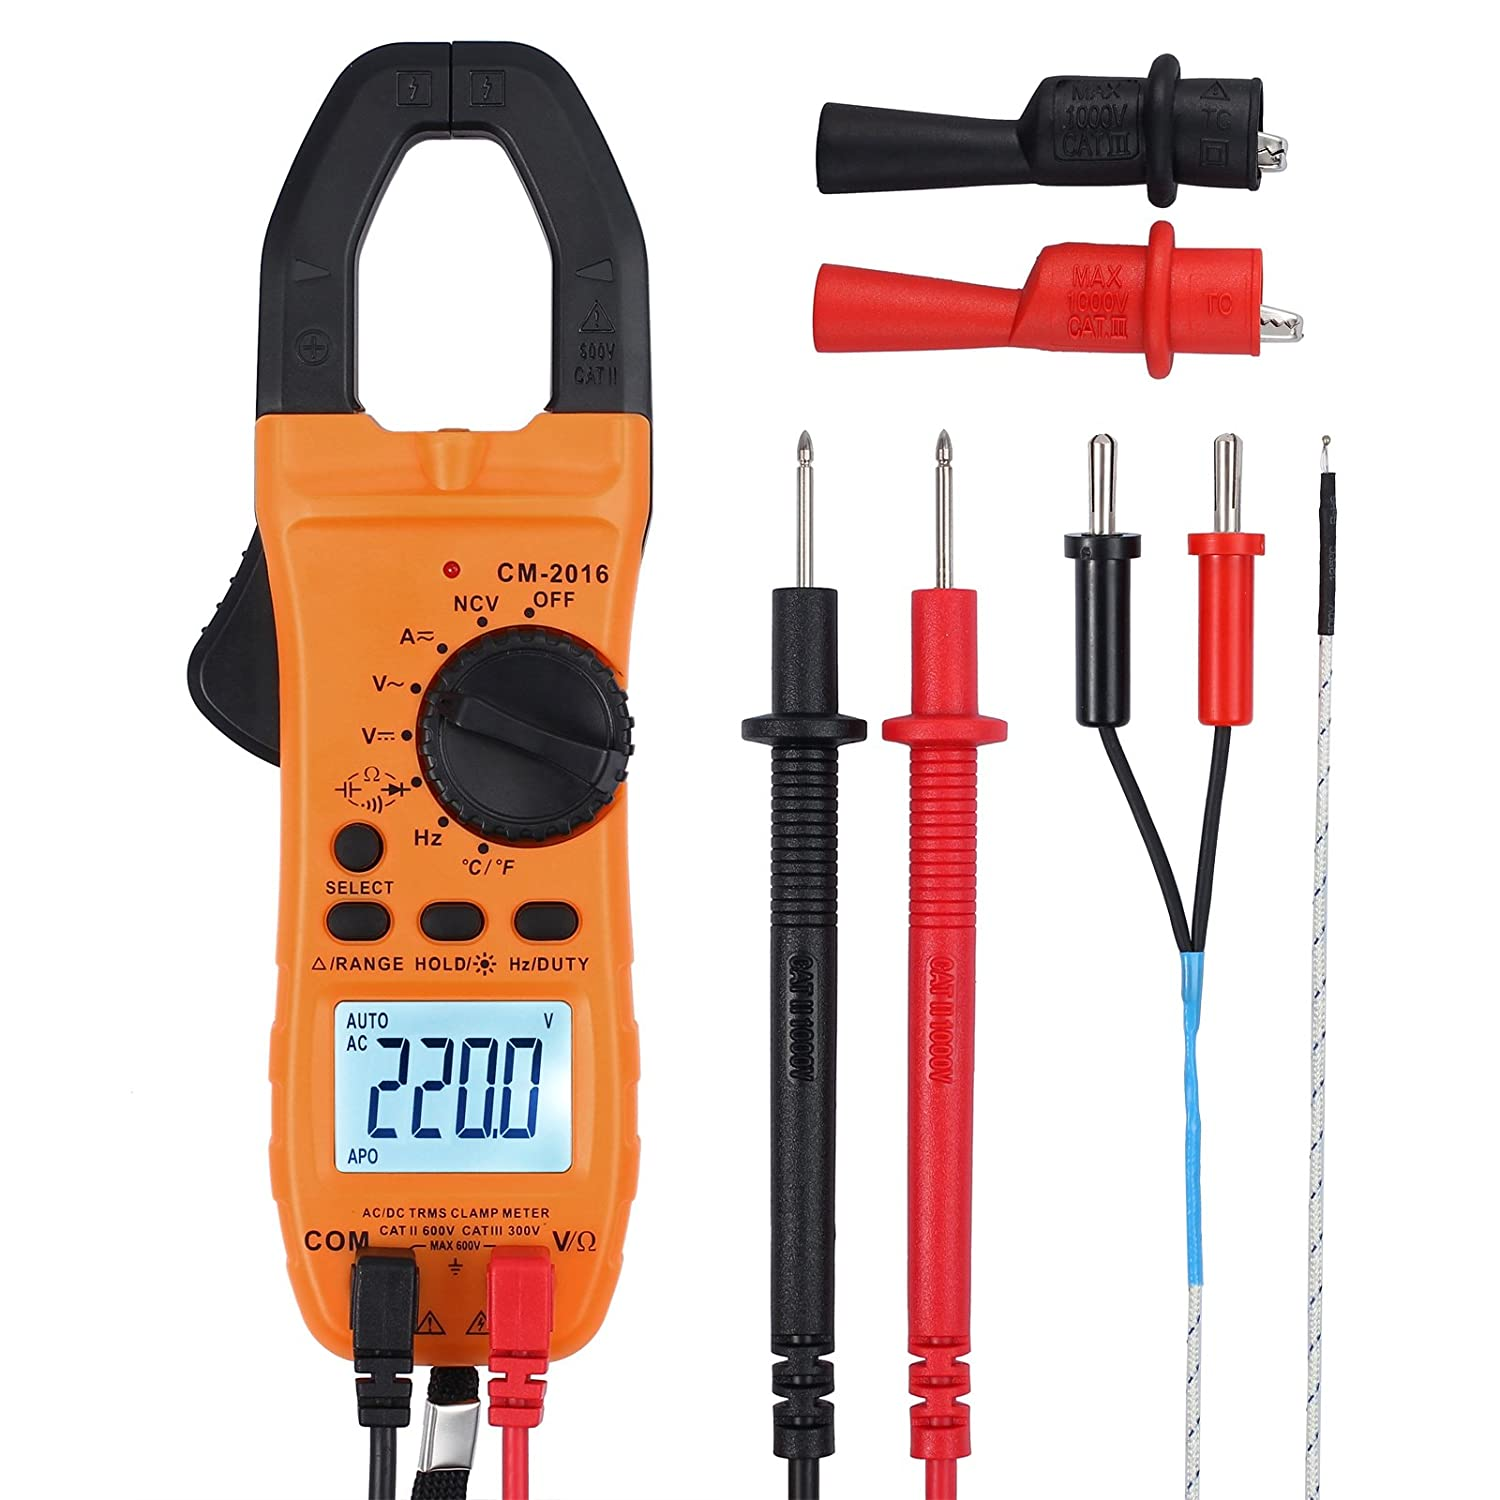 Digital Clamp Meter TRMS Auto Ranging 5999 Counts Multimeter with Alligator Clip Batteries And Bag Multi Tester with Light for Voltage Current Resistance Capacitance Frequency Temperature Diode Test Proster TL301